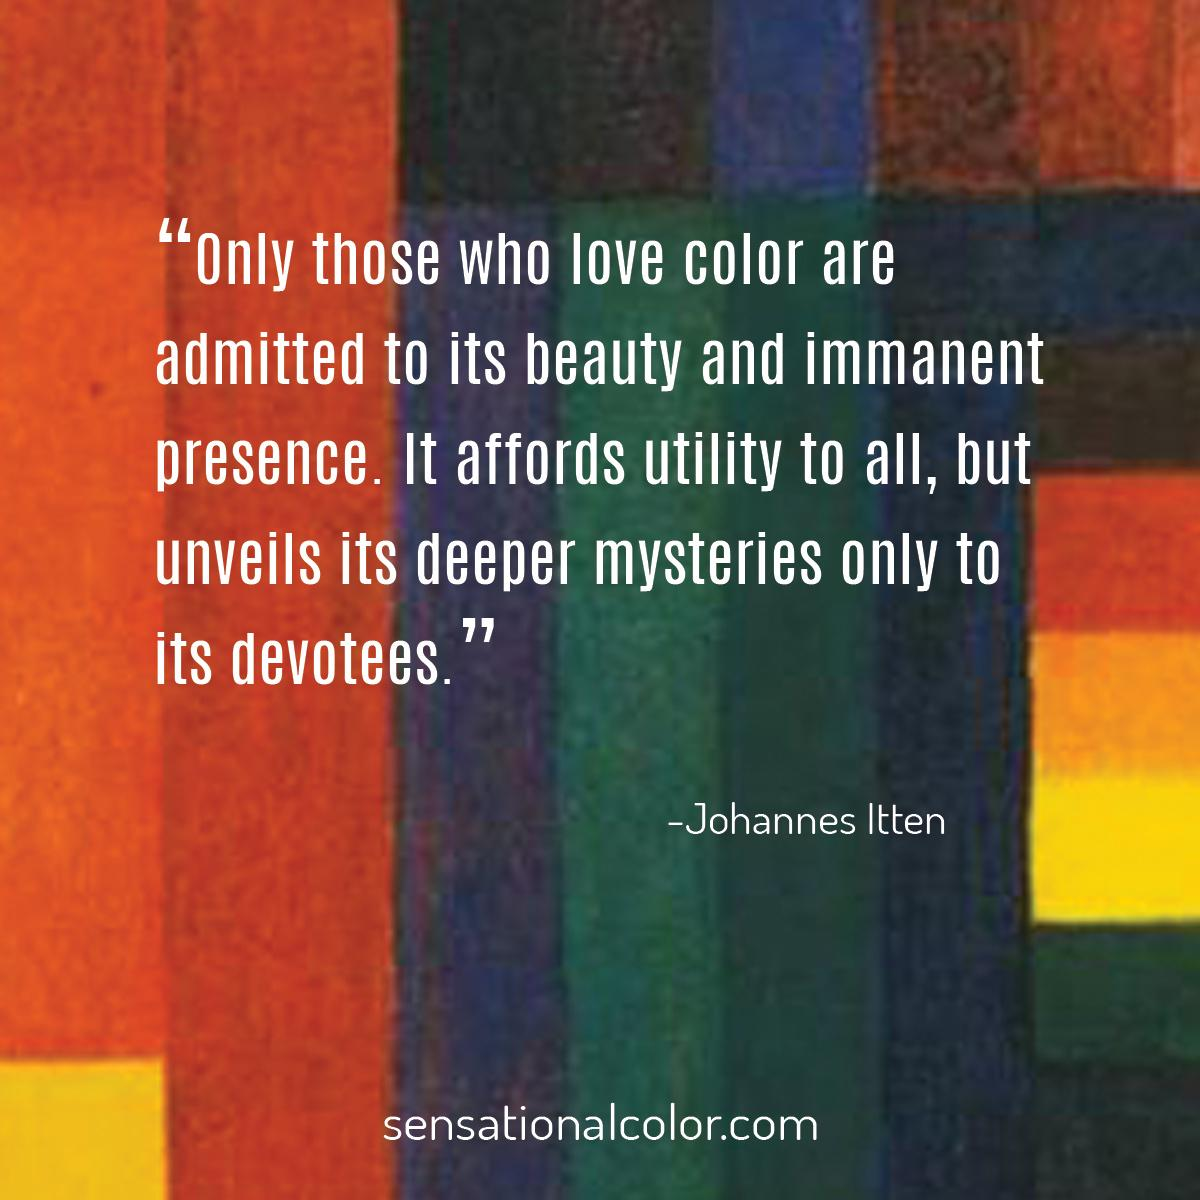 """Only those who love color are admitted to its beauty and immanent presence. It affords utility to all, but unveils its deeper mysteries only to its devotees."" - Johannes Itten"